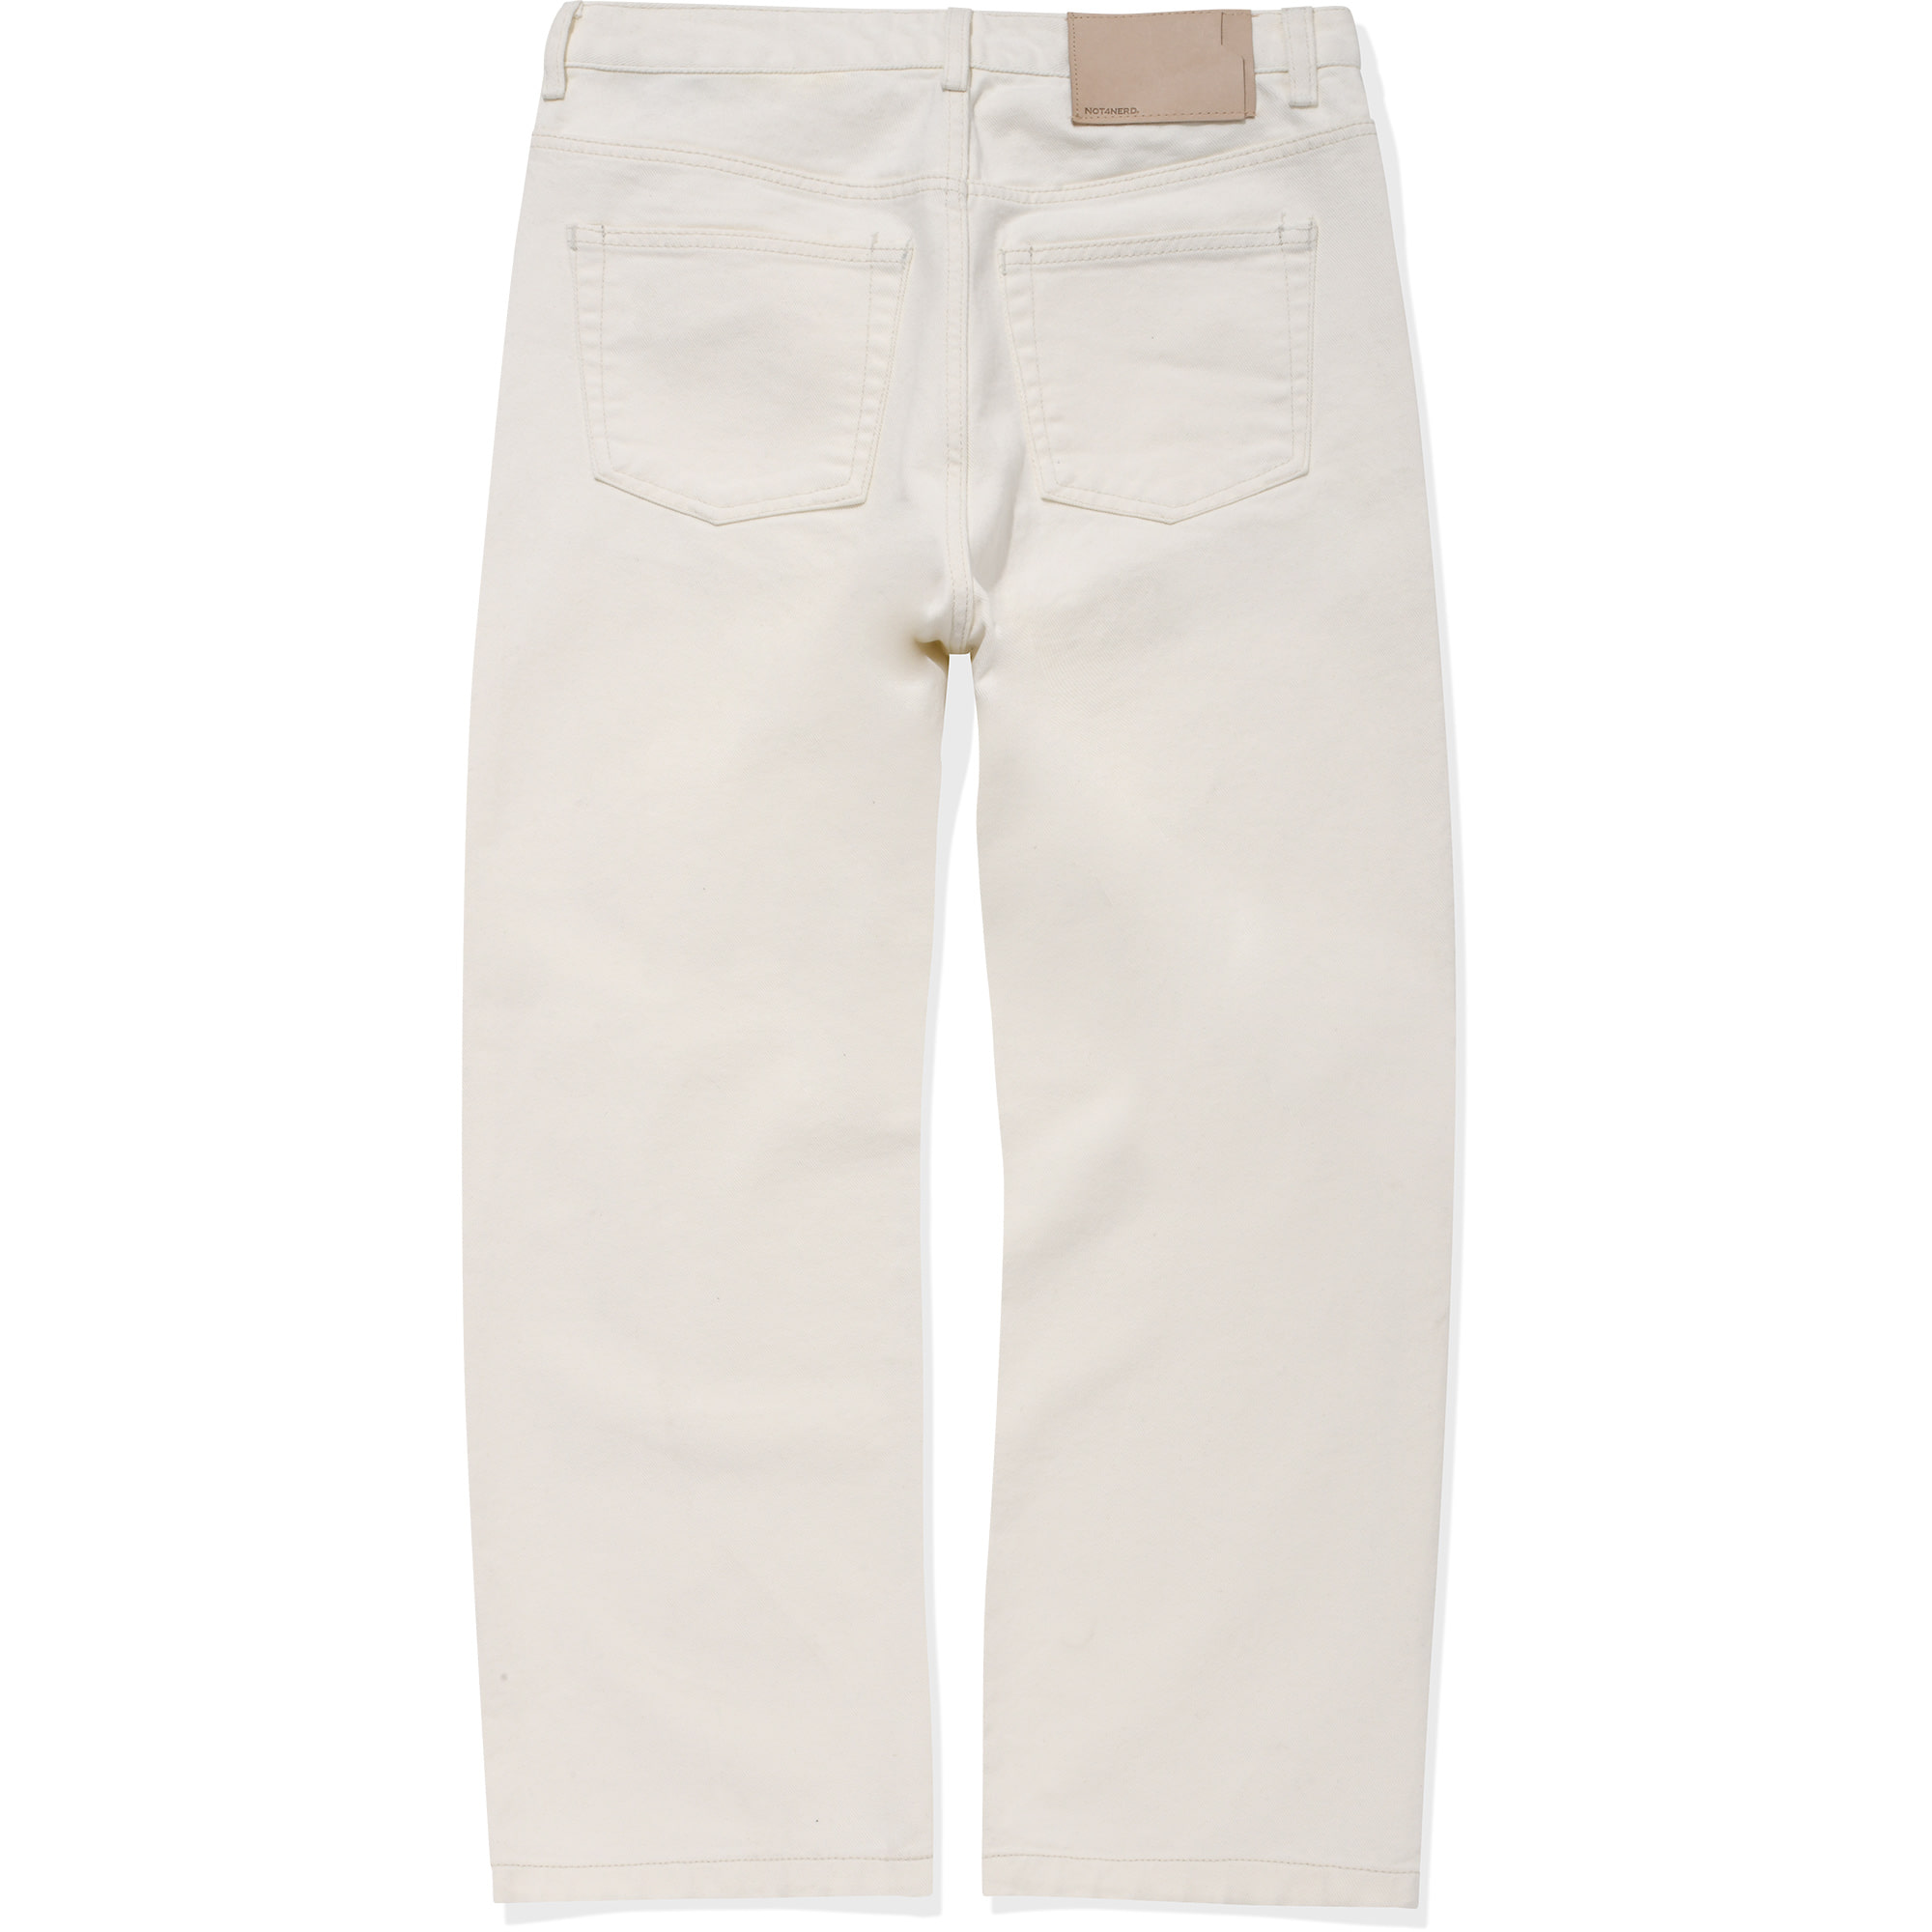 Card Wallet Wide Denim Pants [Cream],NOT4NERD